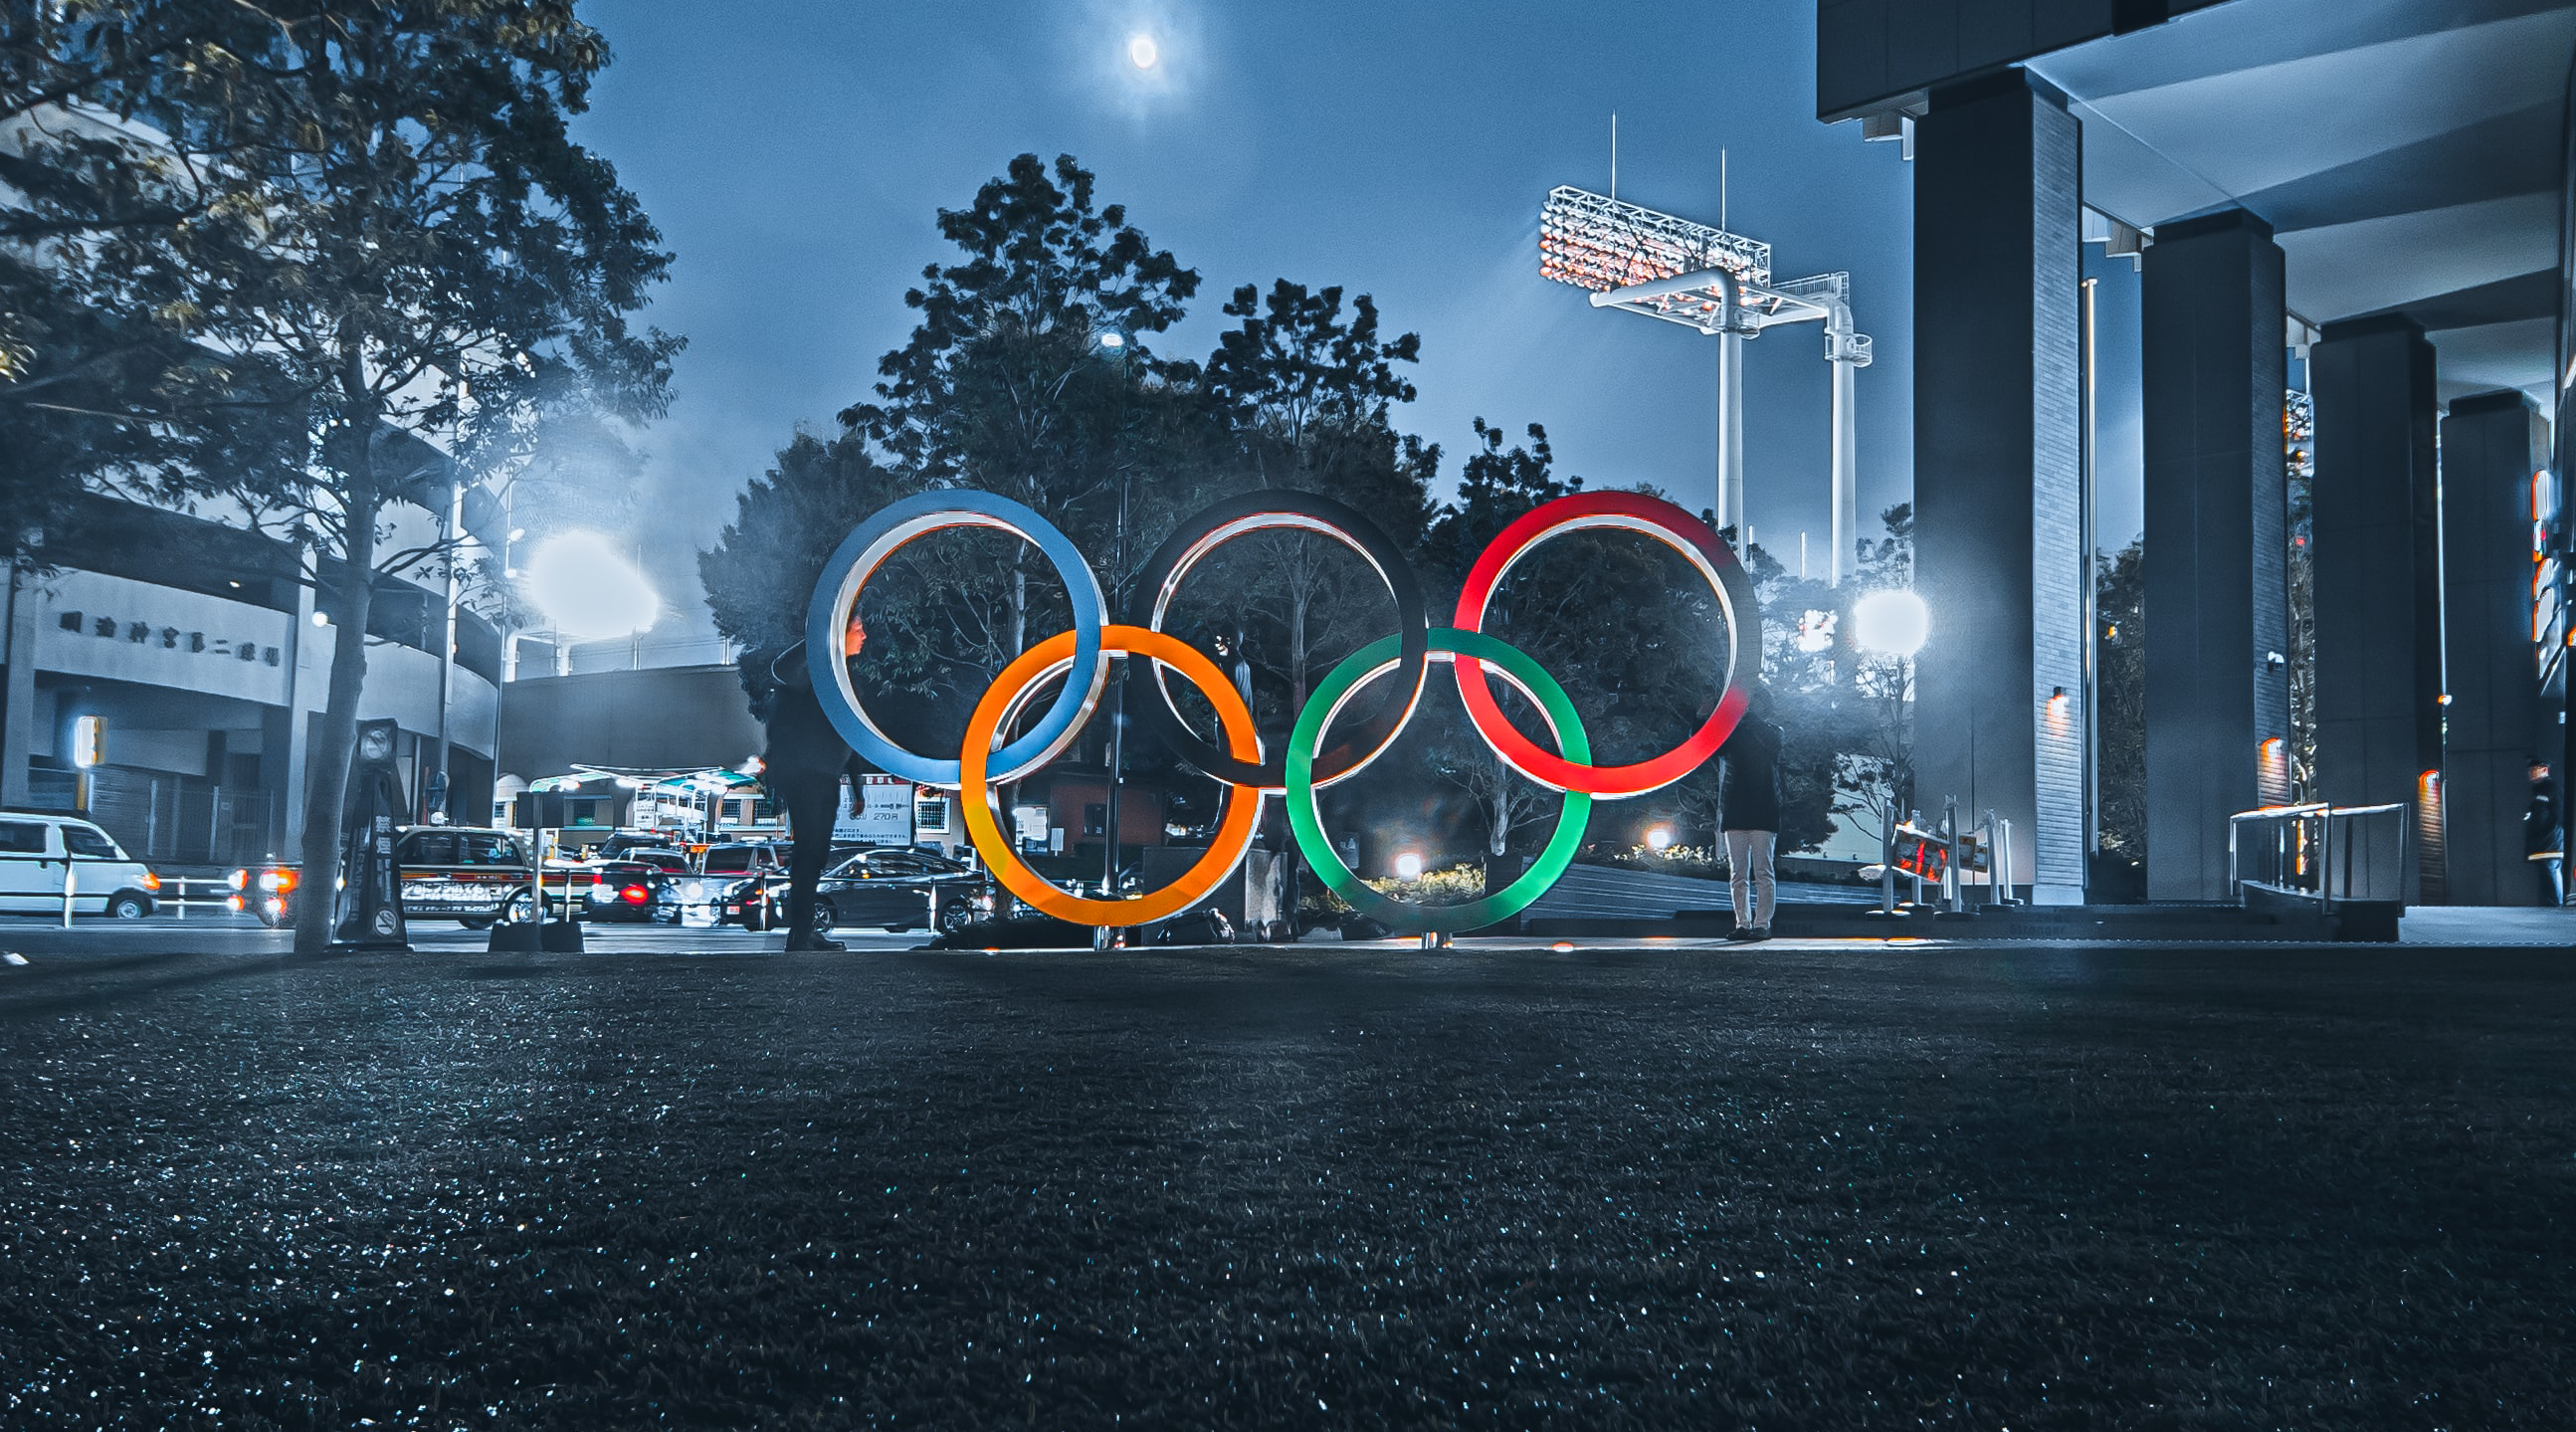 olympic rings monument lit up at night outdoors